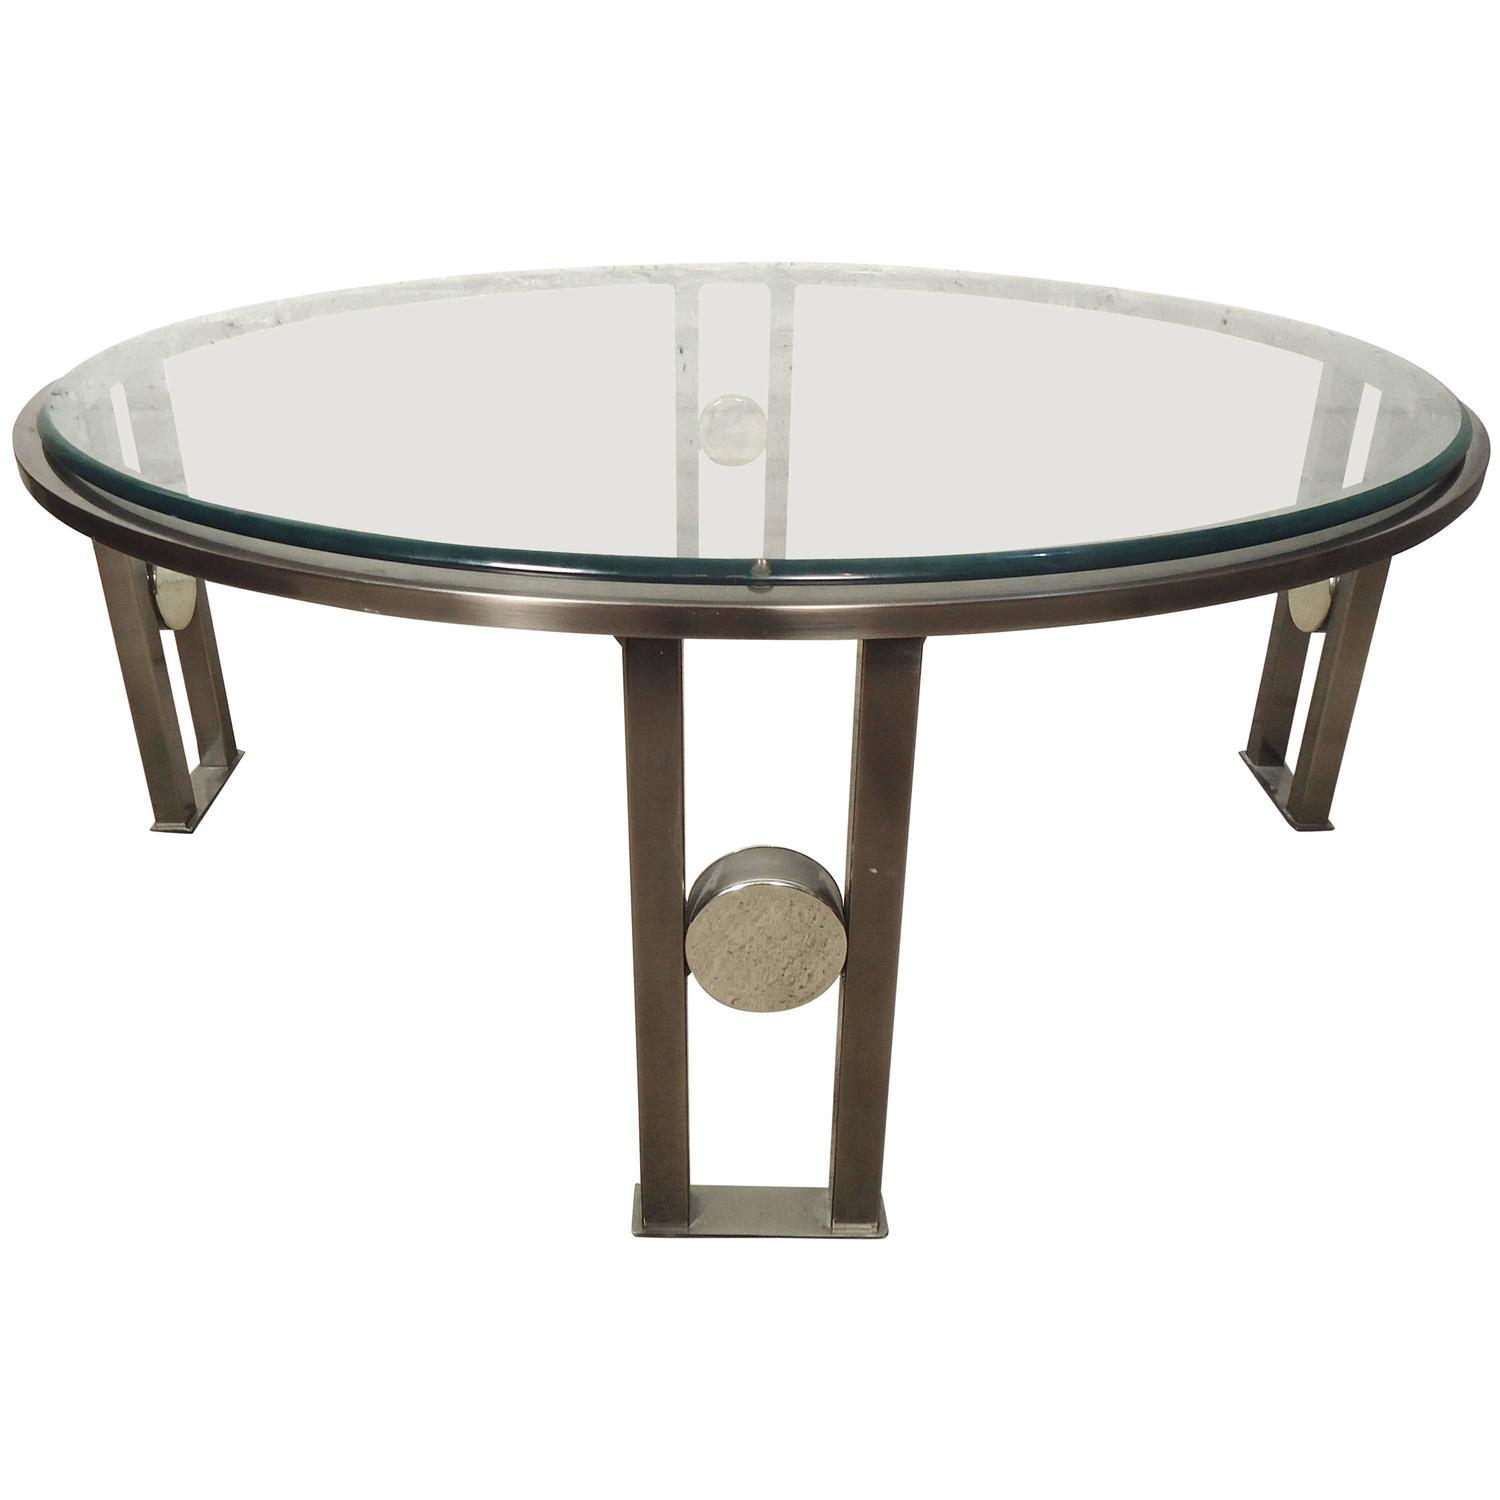 Round glass top coffee table at 1stdibs for Large round glass top coffee table